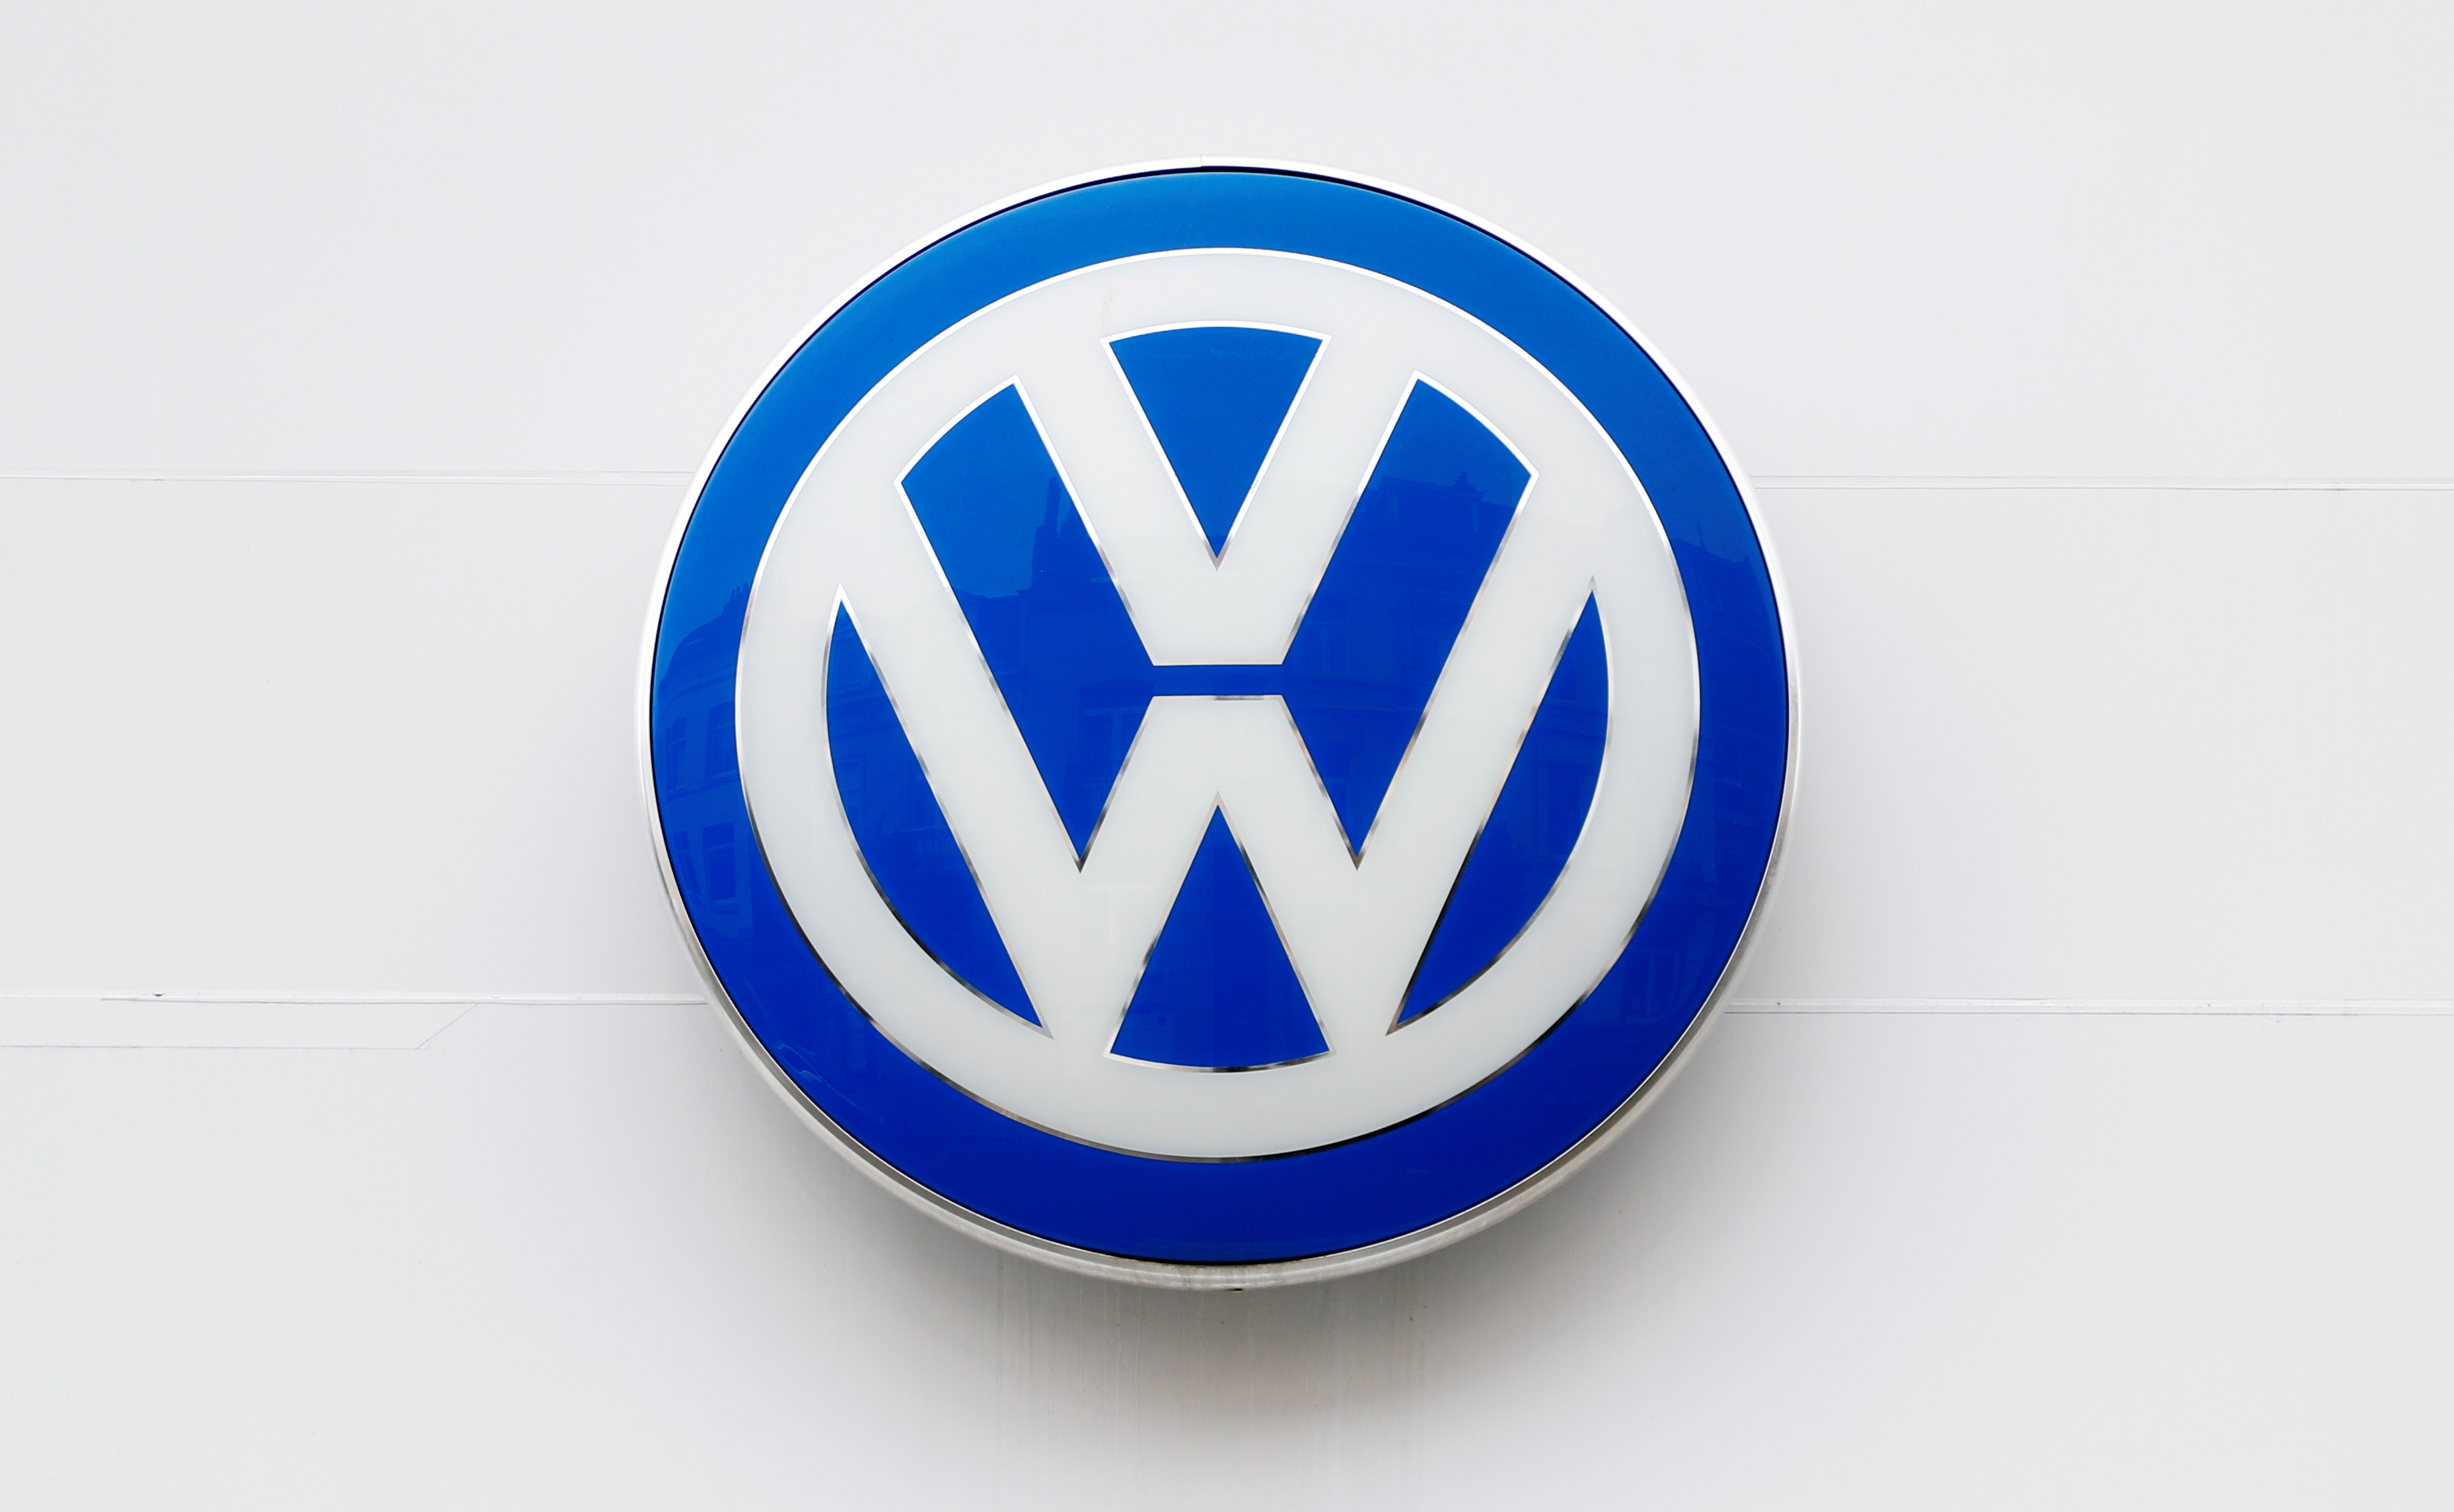 The logo of German carmaker Volkswagen is seen on the wall of a showroom of a Volkswagen car dealer in Brussels, Belgium July 9, 2020. REUTERS/Francois Lenoir/File Photo